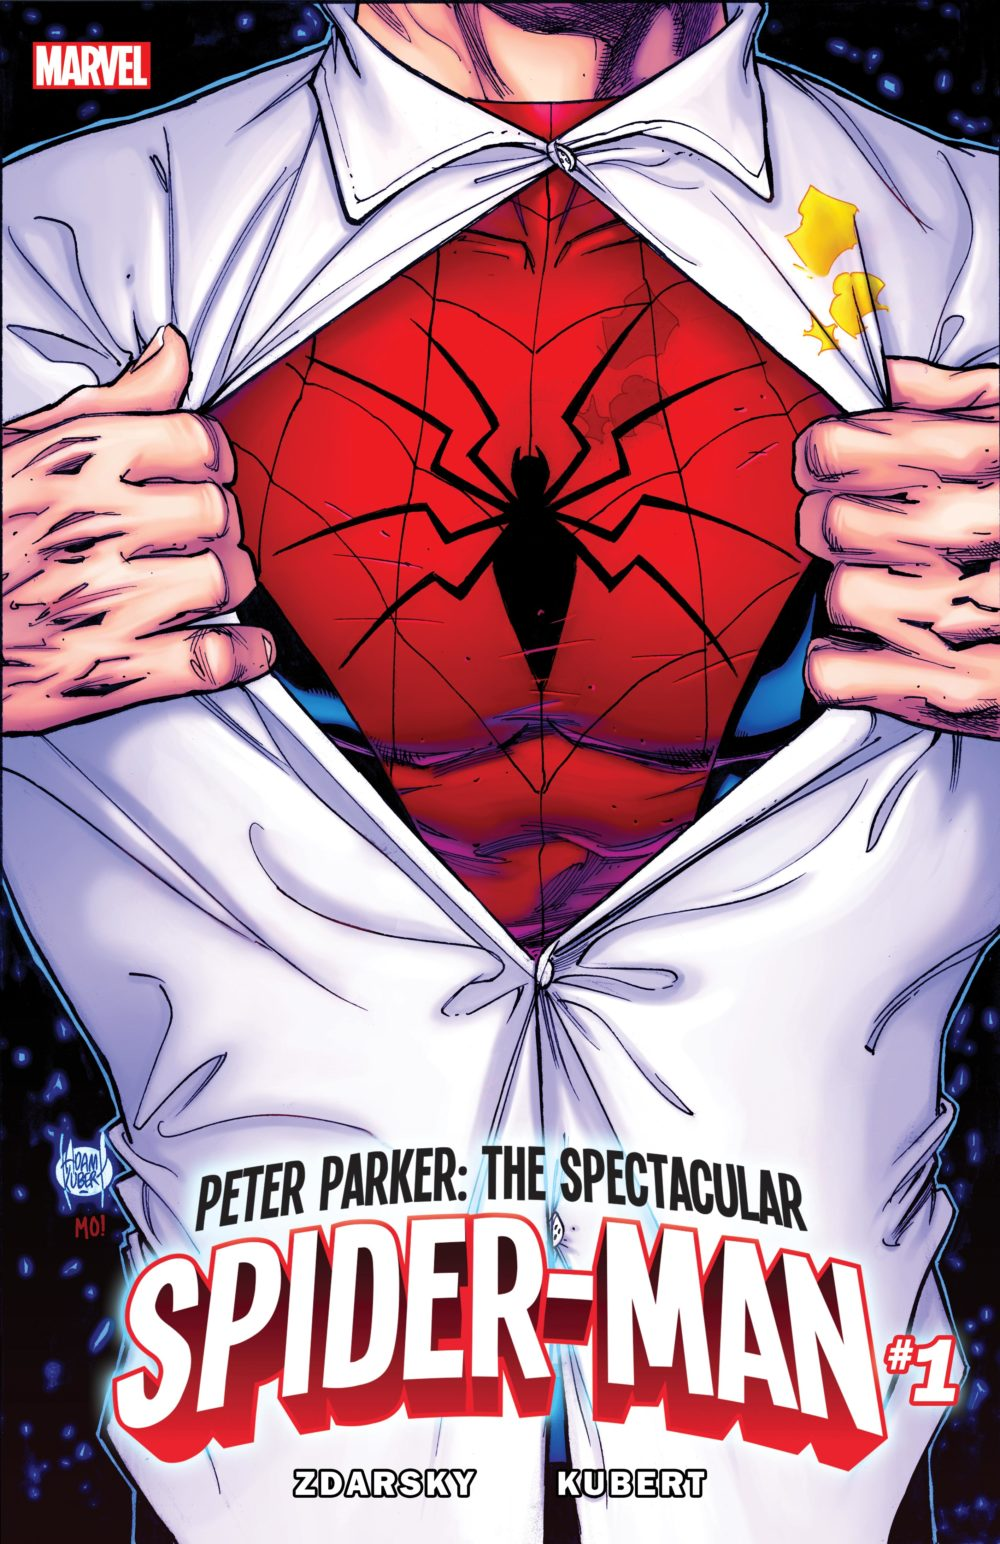 PETER PARKER: THE SPECTACULAR SPIDER-MAN – The New Ongoing Series Debuting This June!